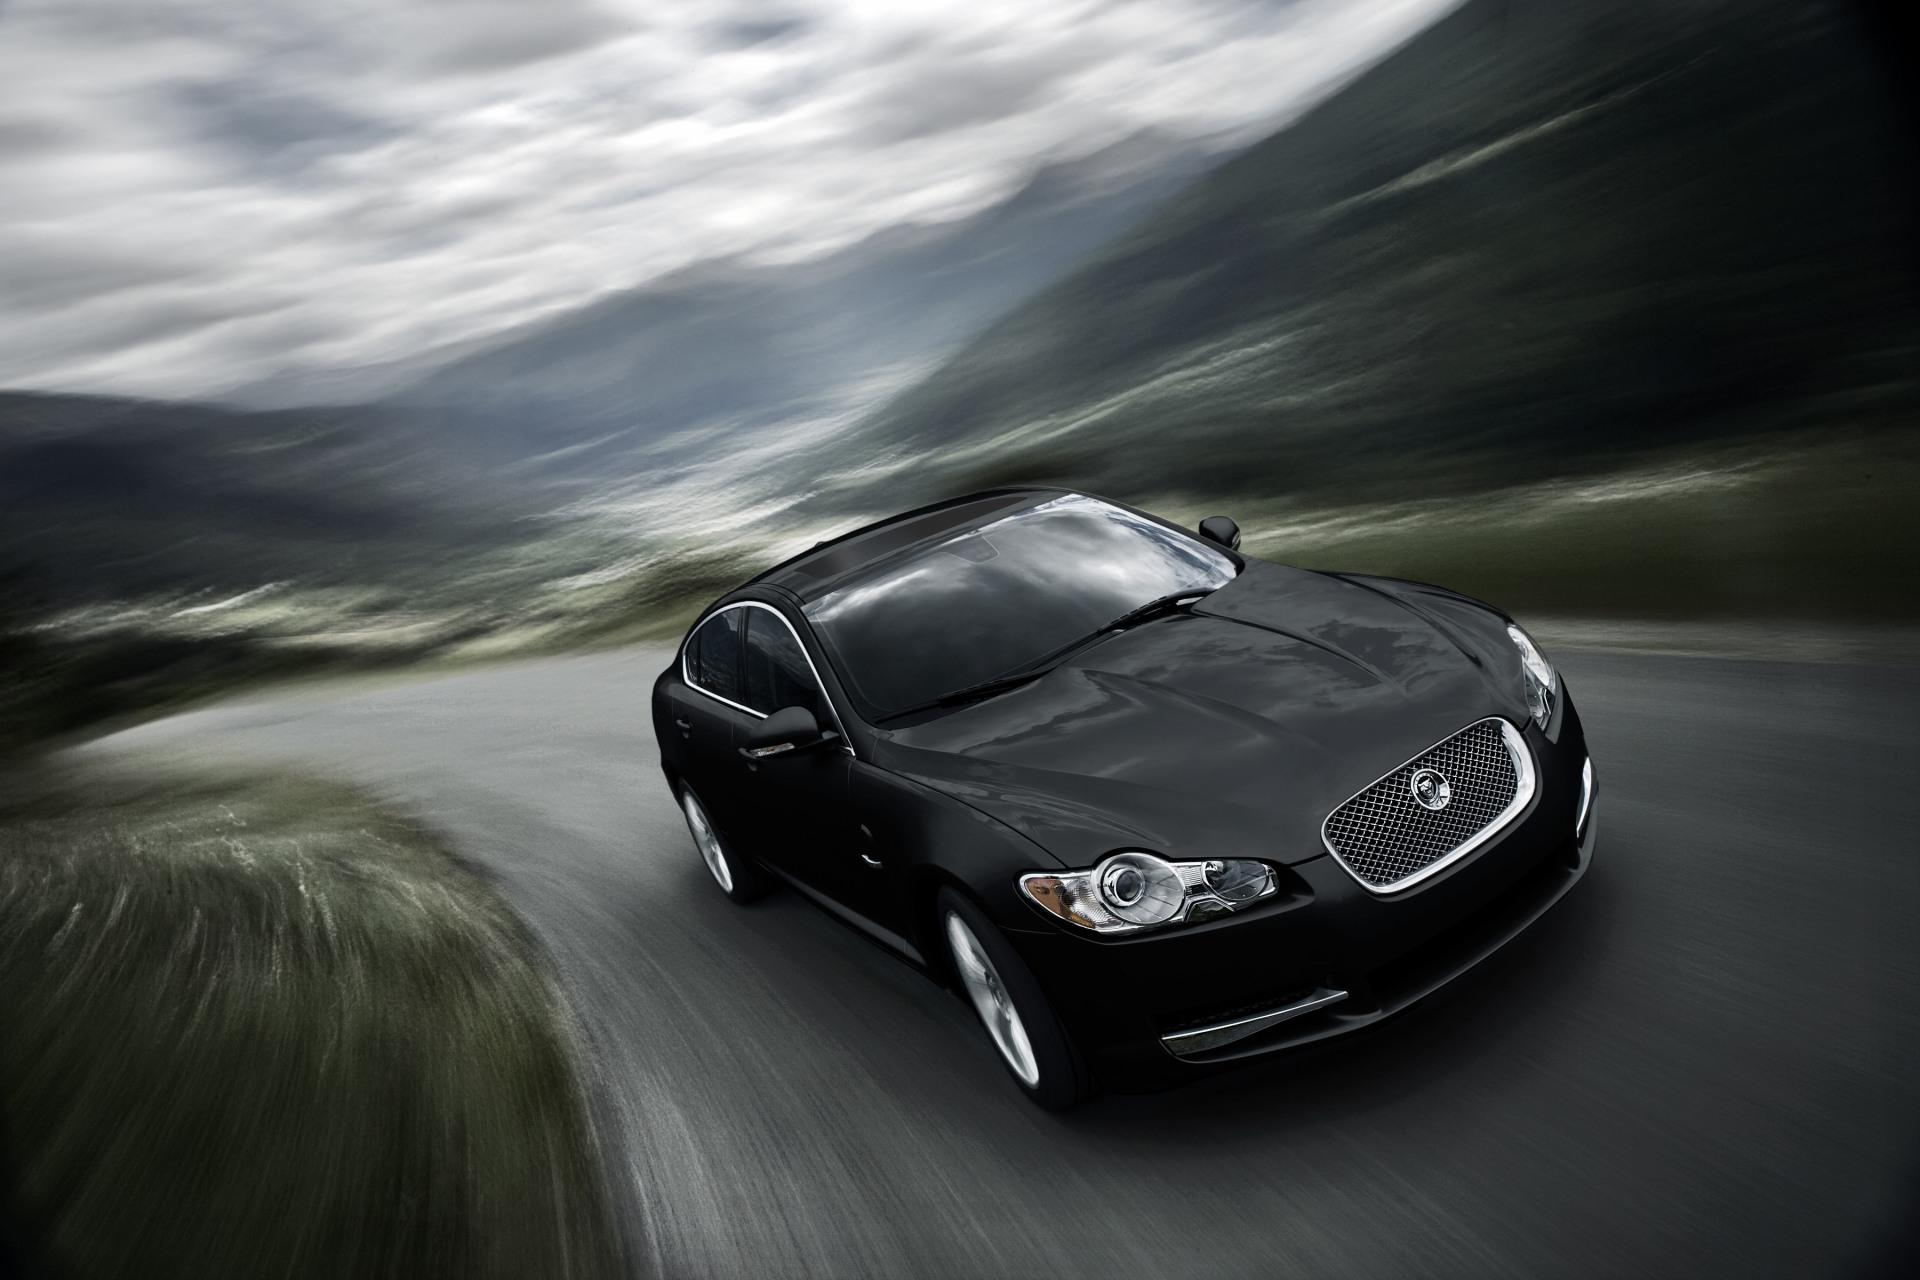 Jaguar Xf Wallpaper Hd Car Wallpapers 1920x1280